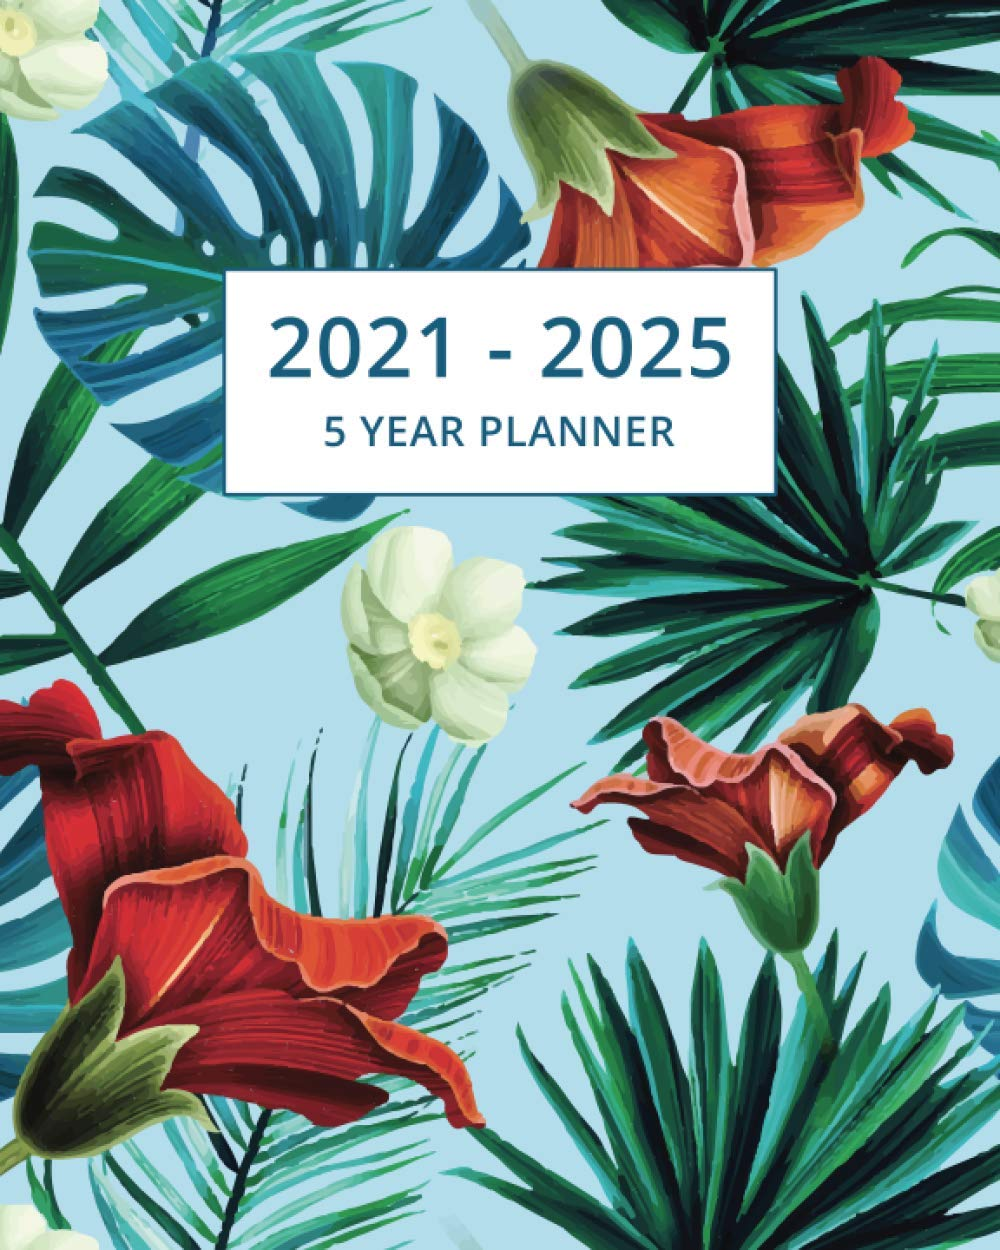 5 Year Planner 2021-2025: Monthly Calendar And Agenda Organizer / Tropical Cover